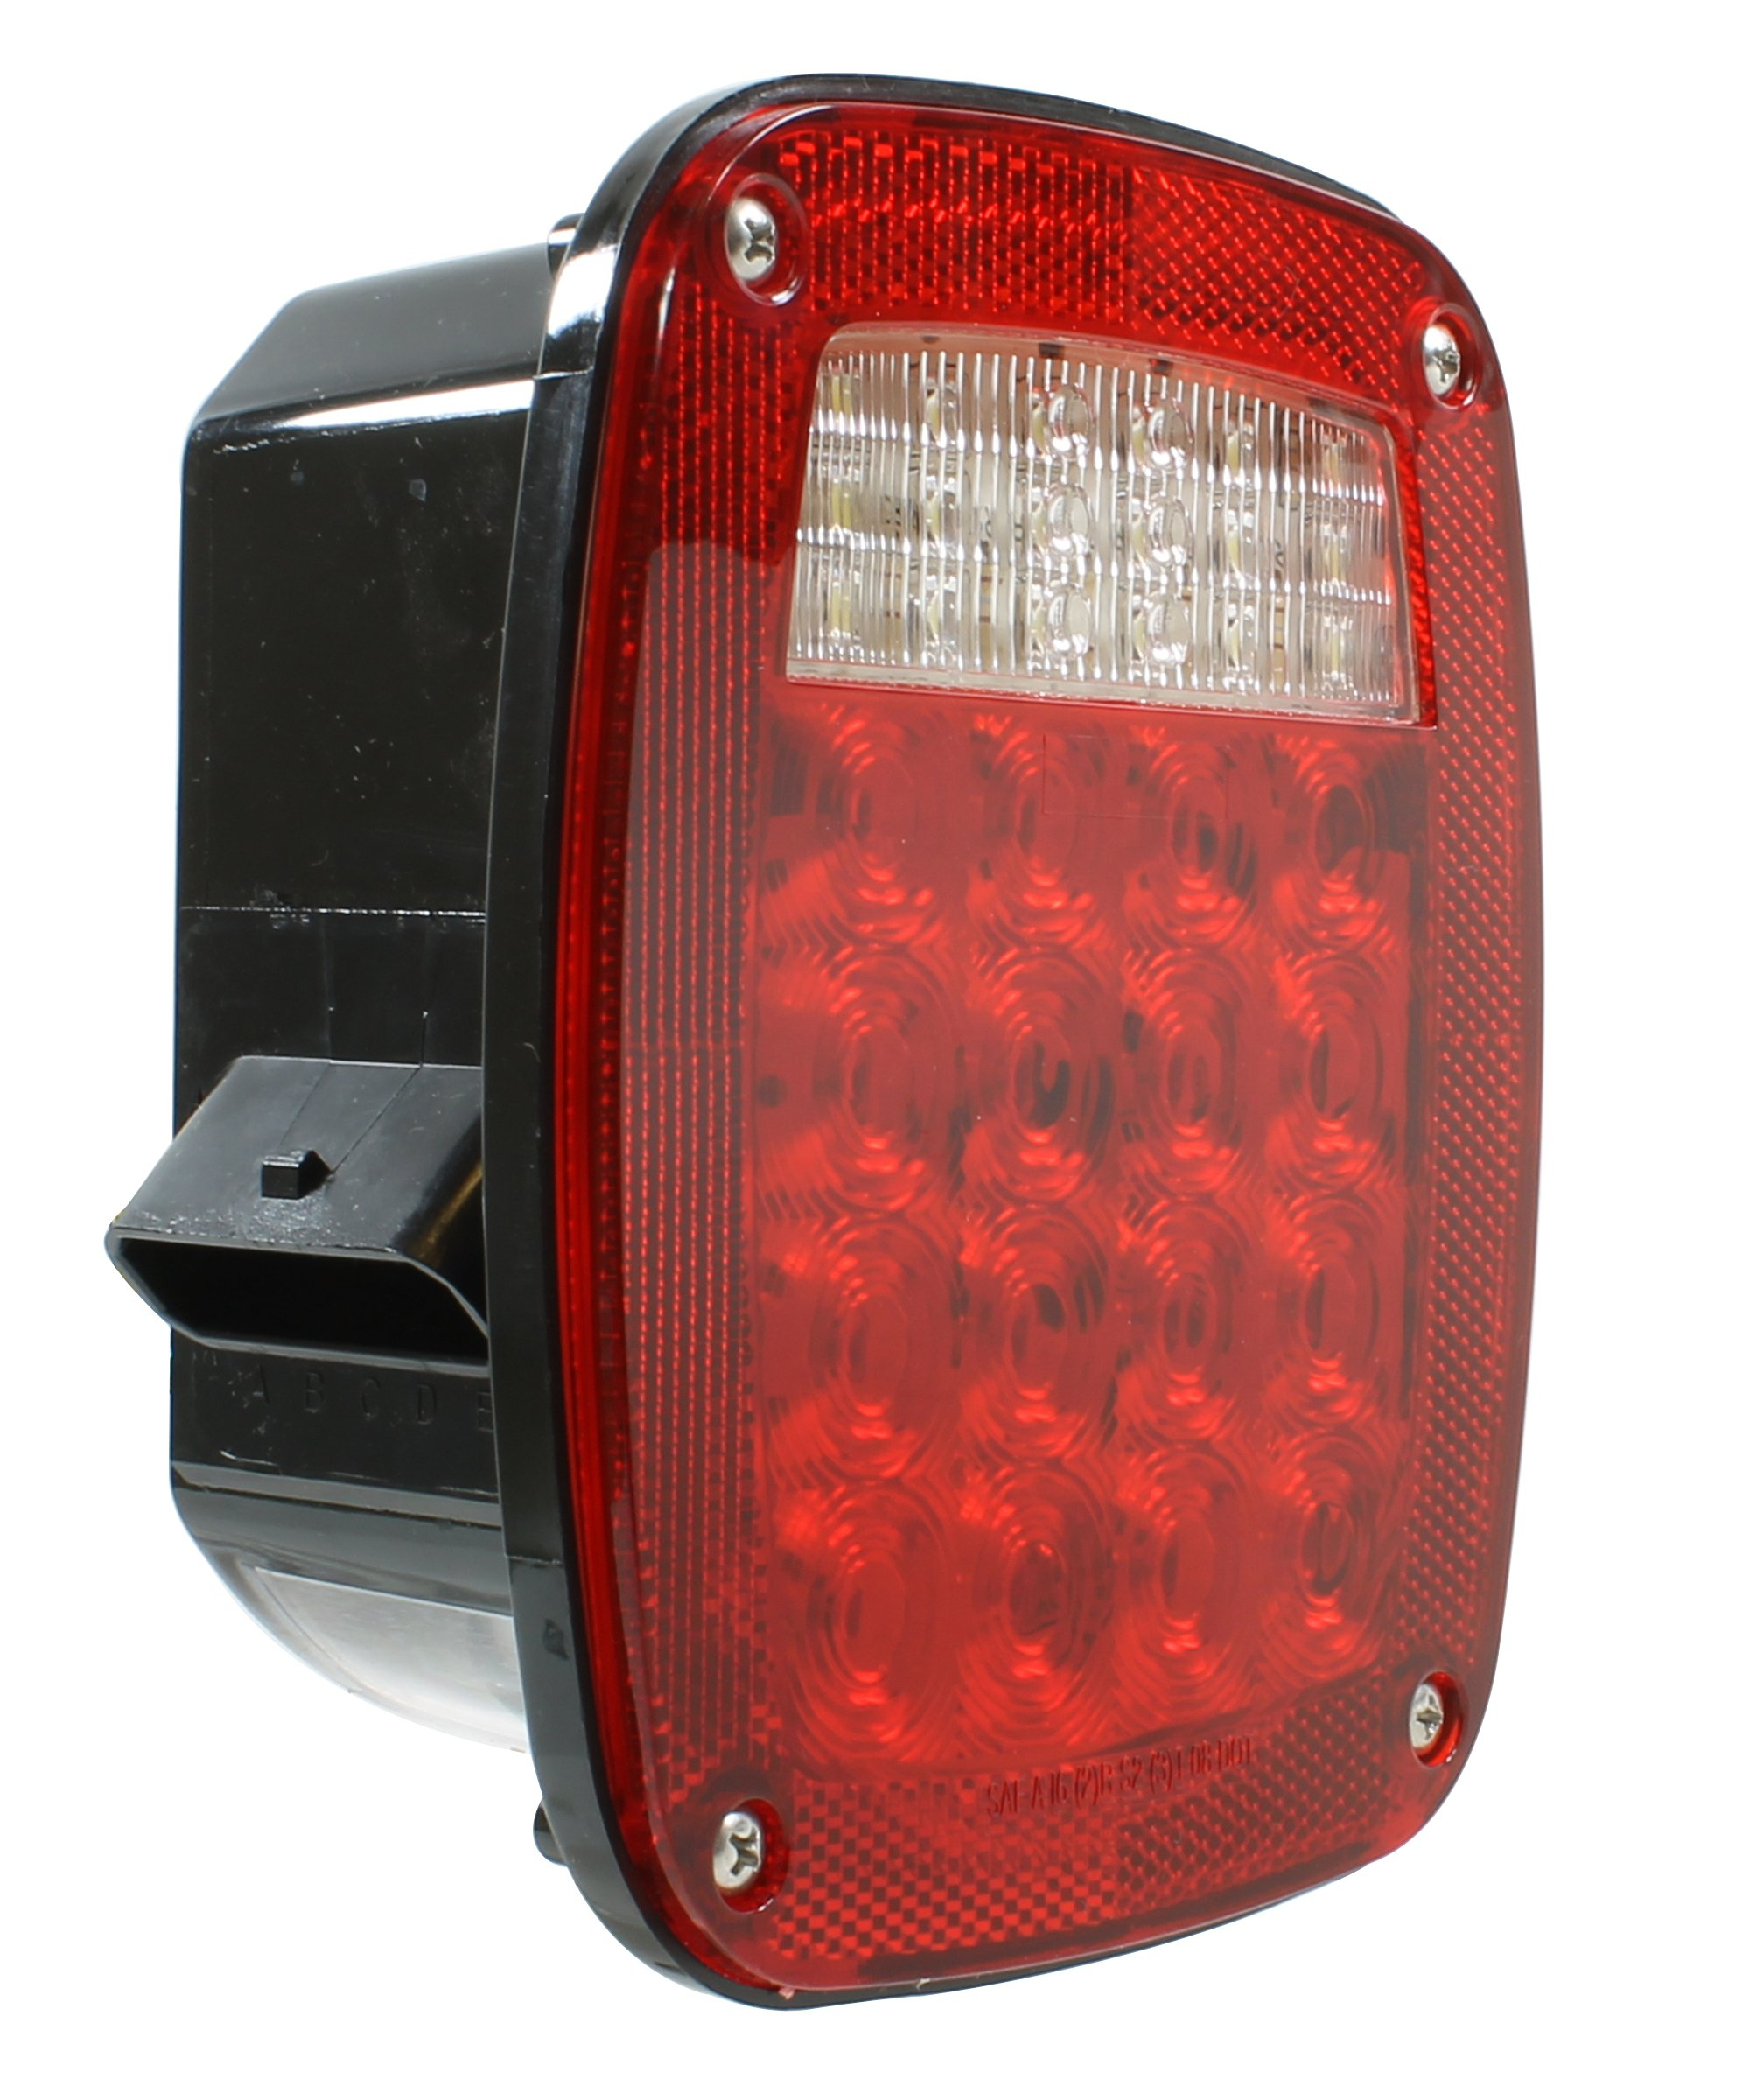 Vehicle Safety Manufacturing 5023LED Red 3-Stud Box Lamp with Double Metri-Pack Connectors